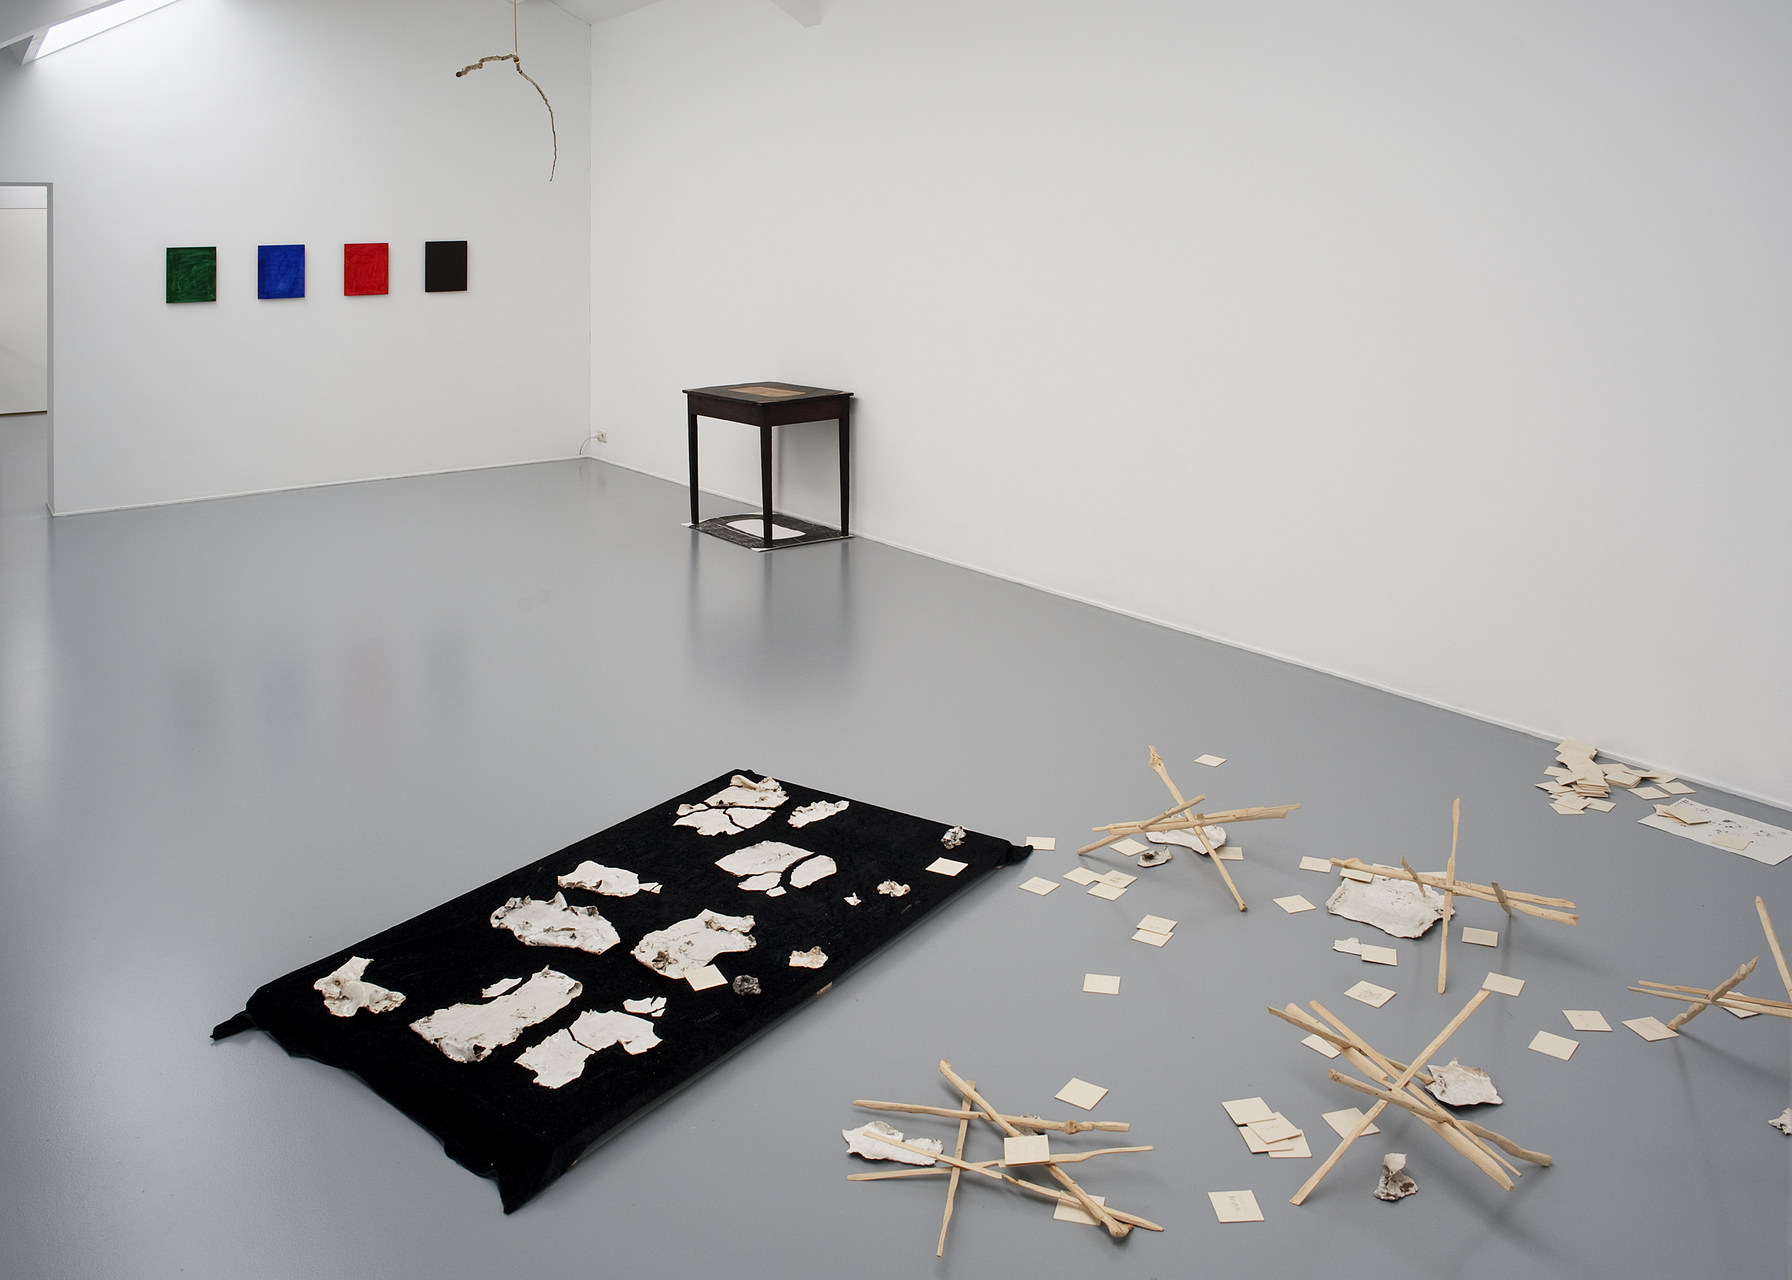 07 install shot with works by Jean-Luc Moul+¿ne, Lucy Skaer, Becky Beasley and Reto Pulfer